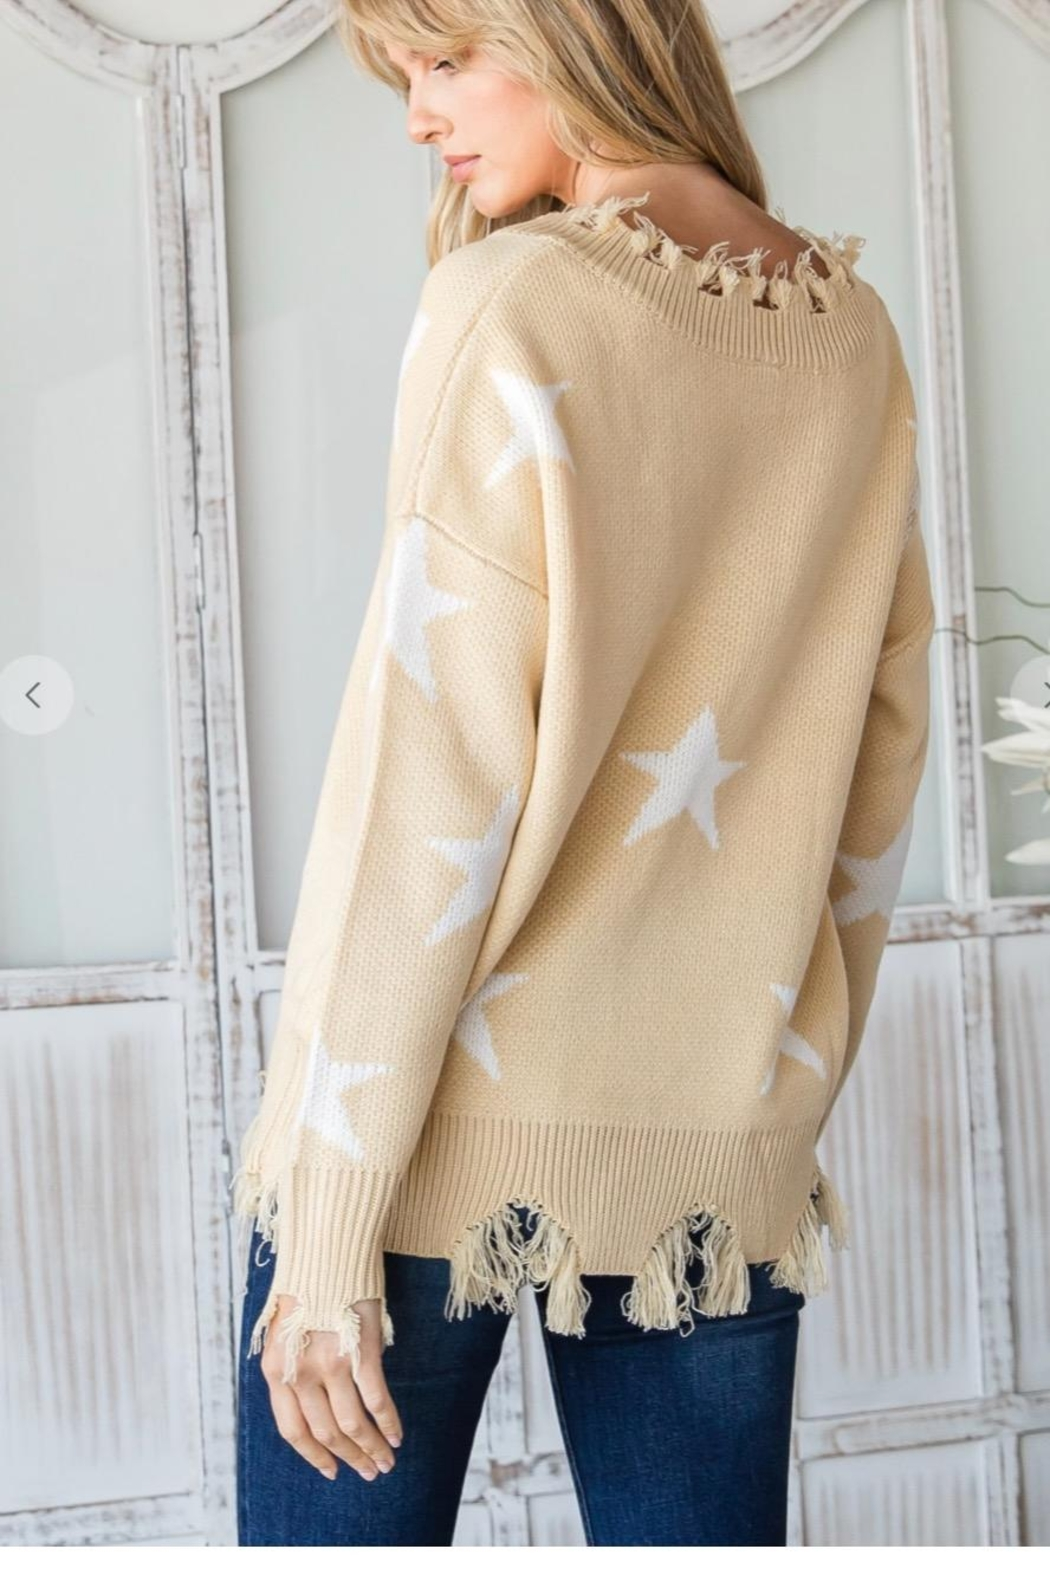 CY Fashion Distressed Knit Sweater - Side Cropped Image